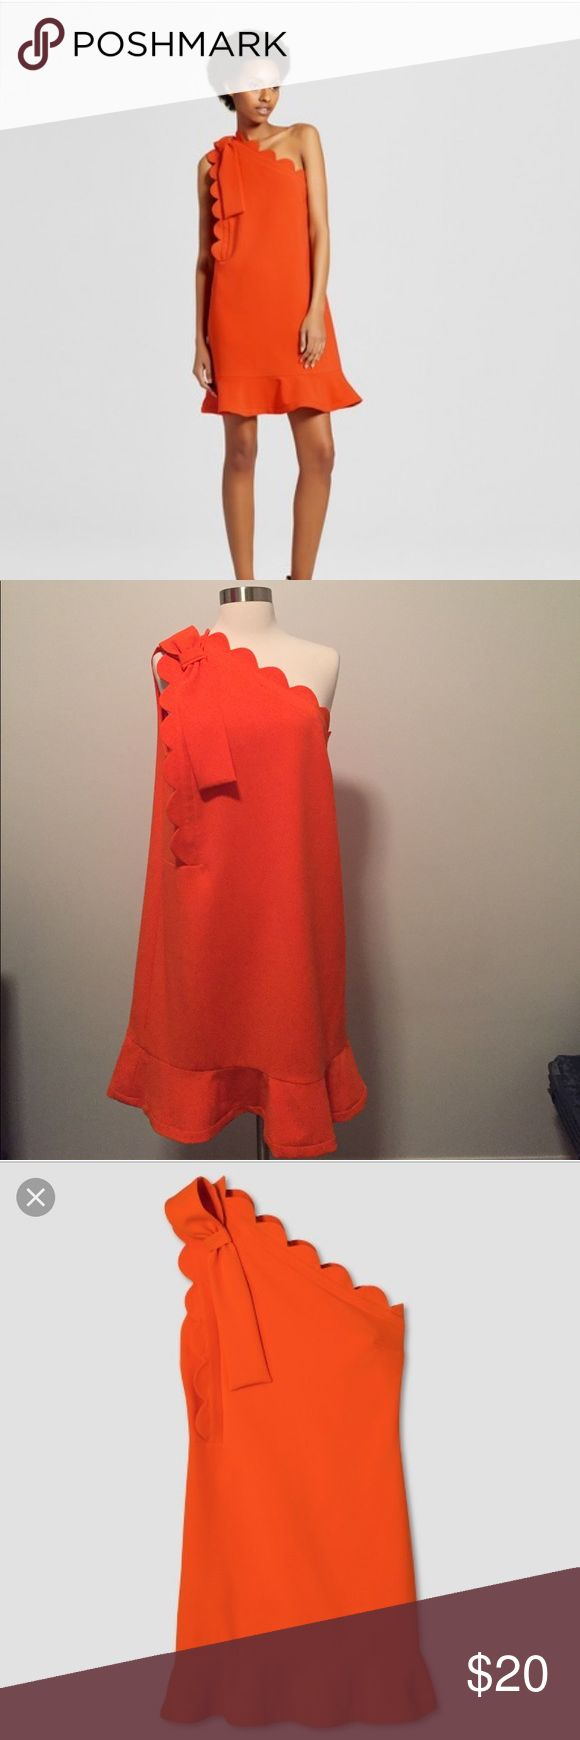 Victoria Beckham for Target Dress Wore once for a shower. A chic option for work or the weekend, this Women's Orange One Shoulder Dress with Bow and Scallop Trim by Victoria Beckham for Target. Victoria Beckham for Target Dresses One Shoulder